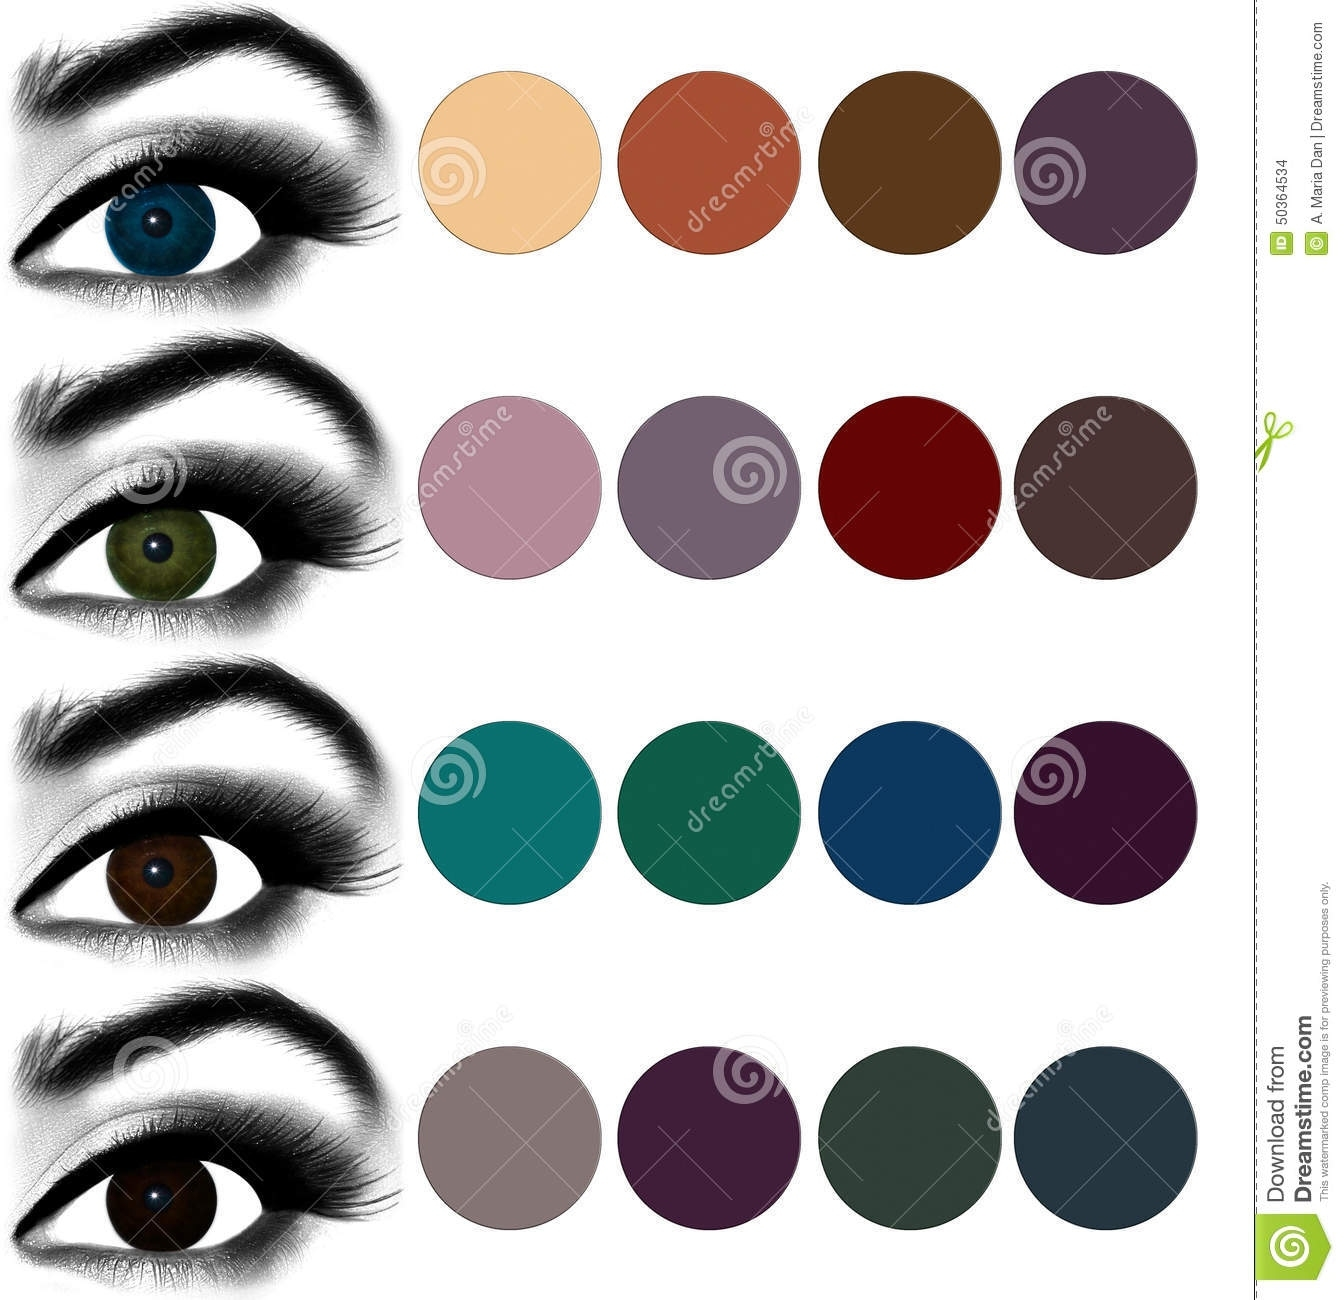 best eyeshadow colours for green eyes - wavy haircut